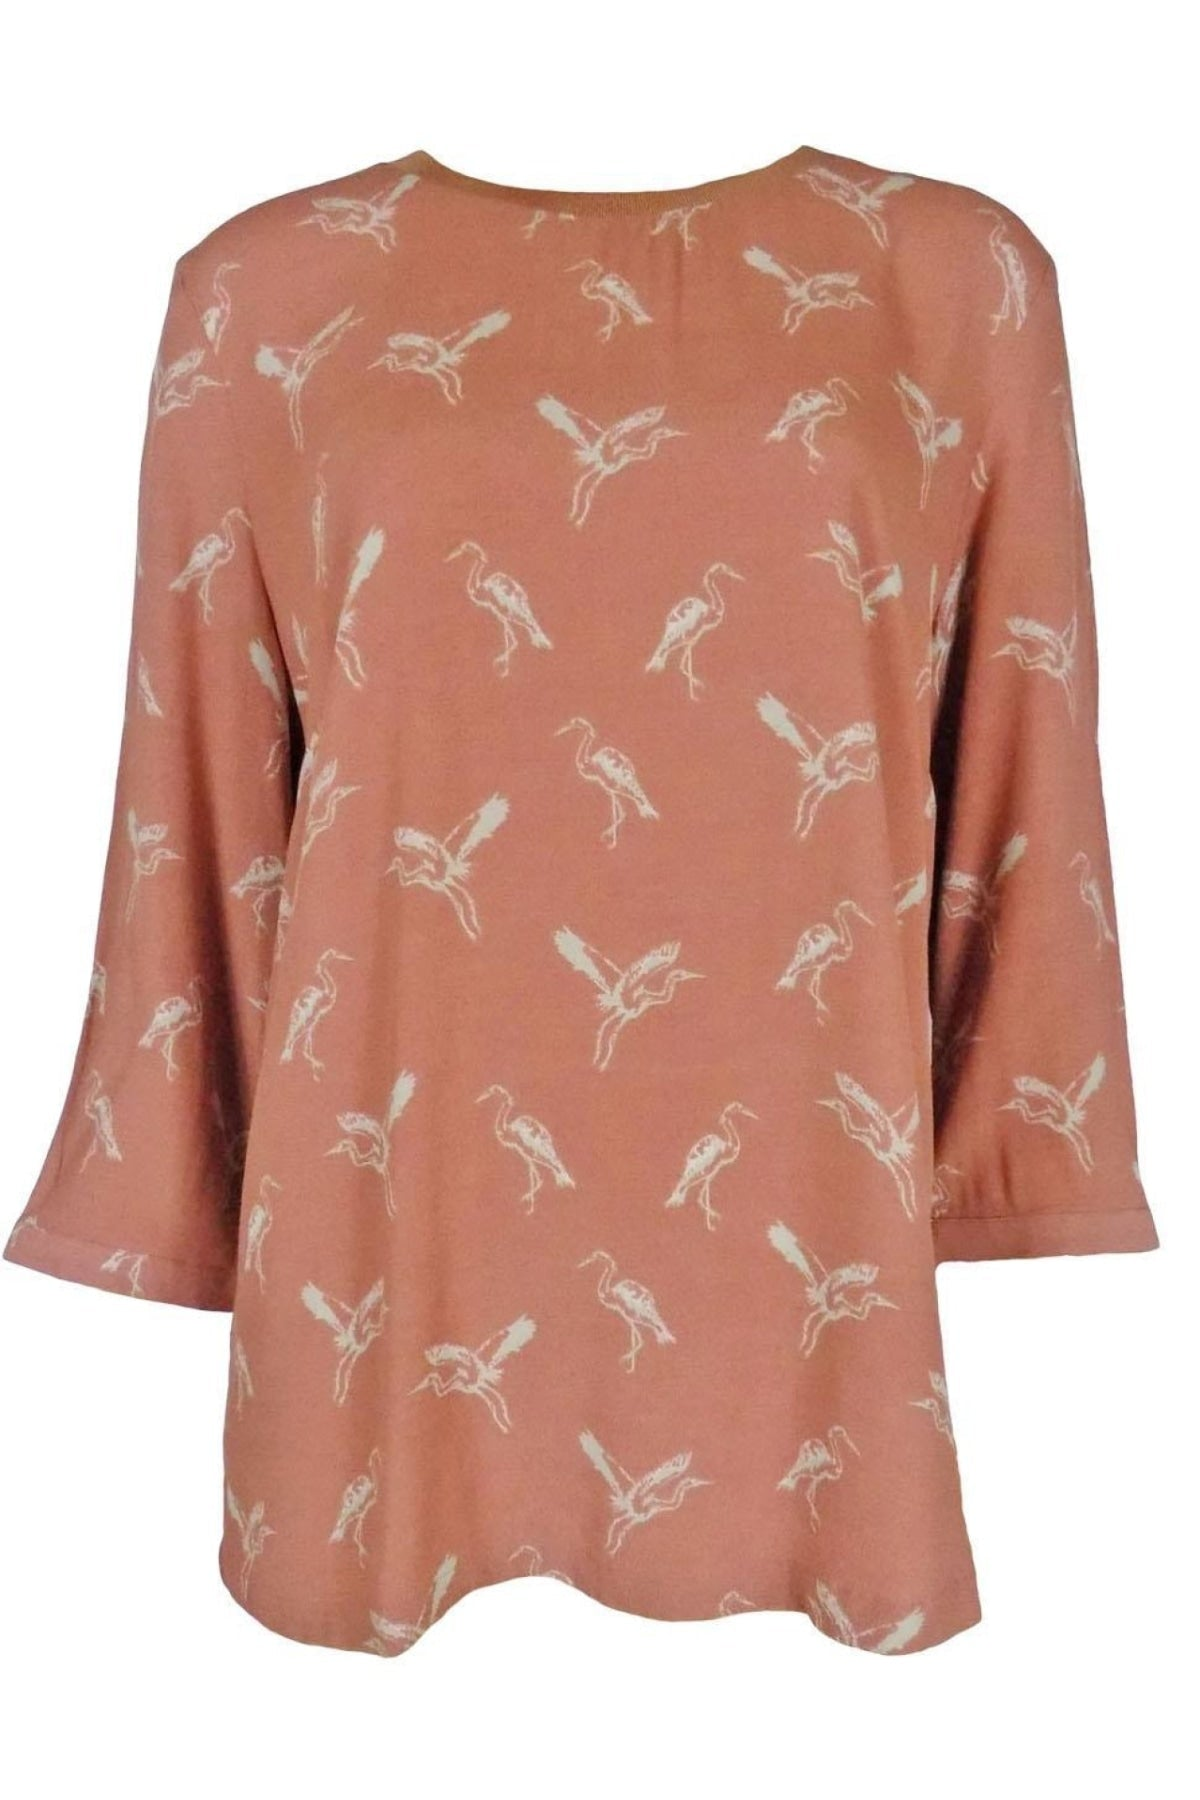 Secret Label Terracotta Heron Print Tunic Top | Secret Label